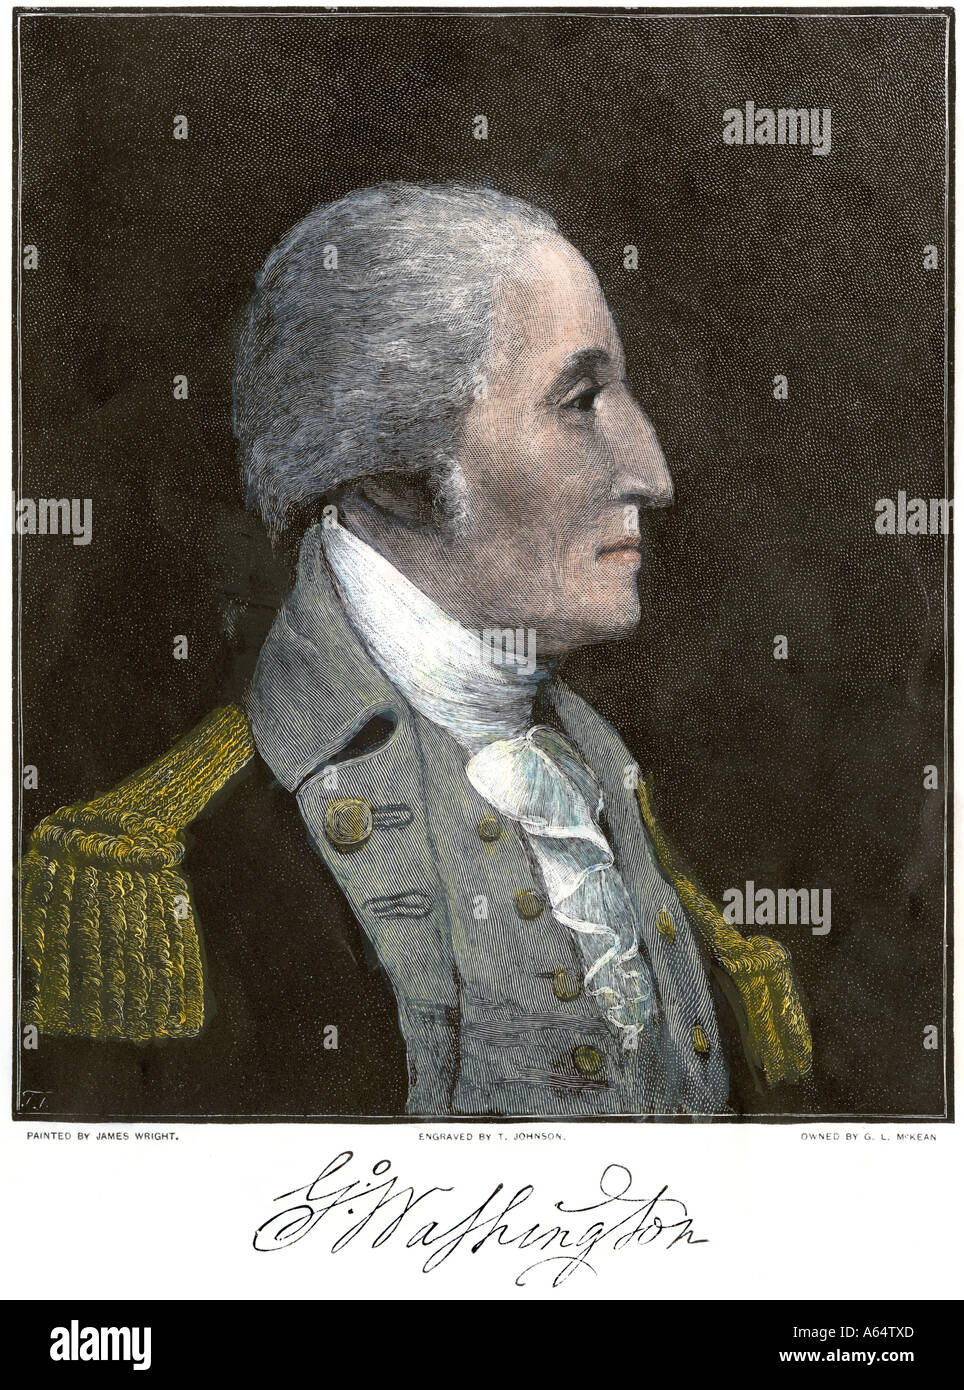 General George Washington profile - Stock Image